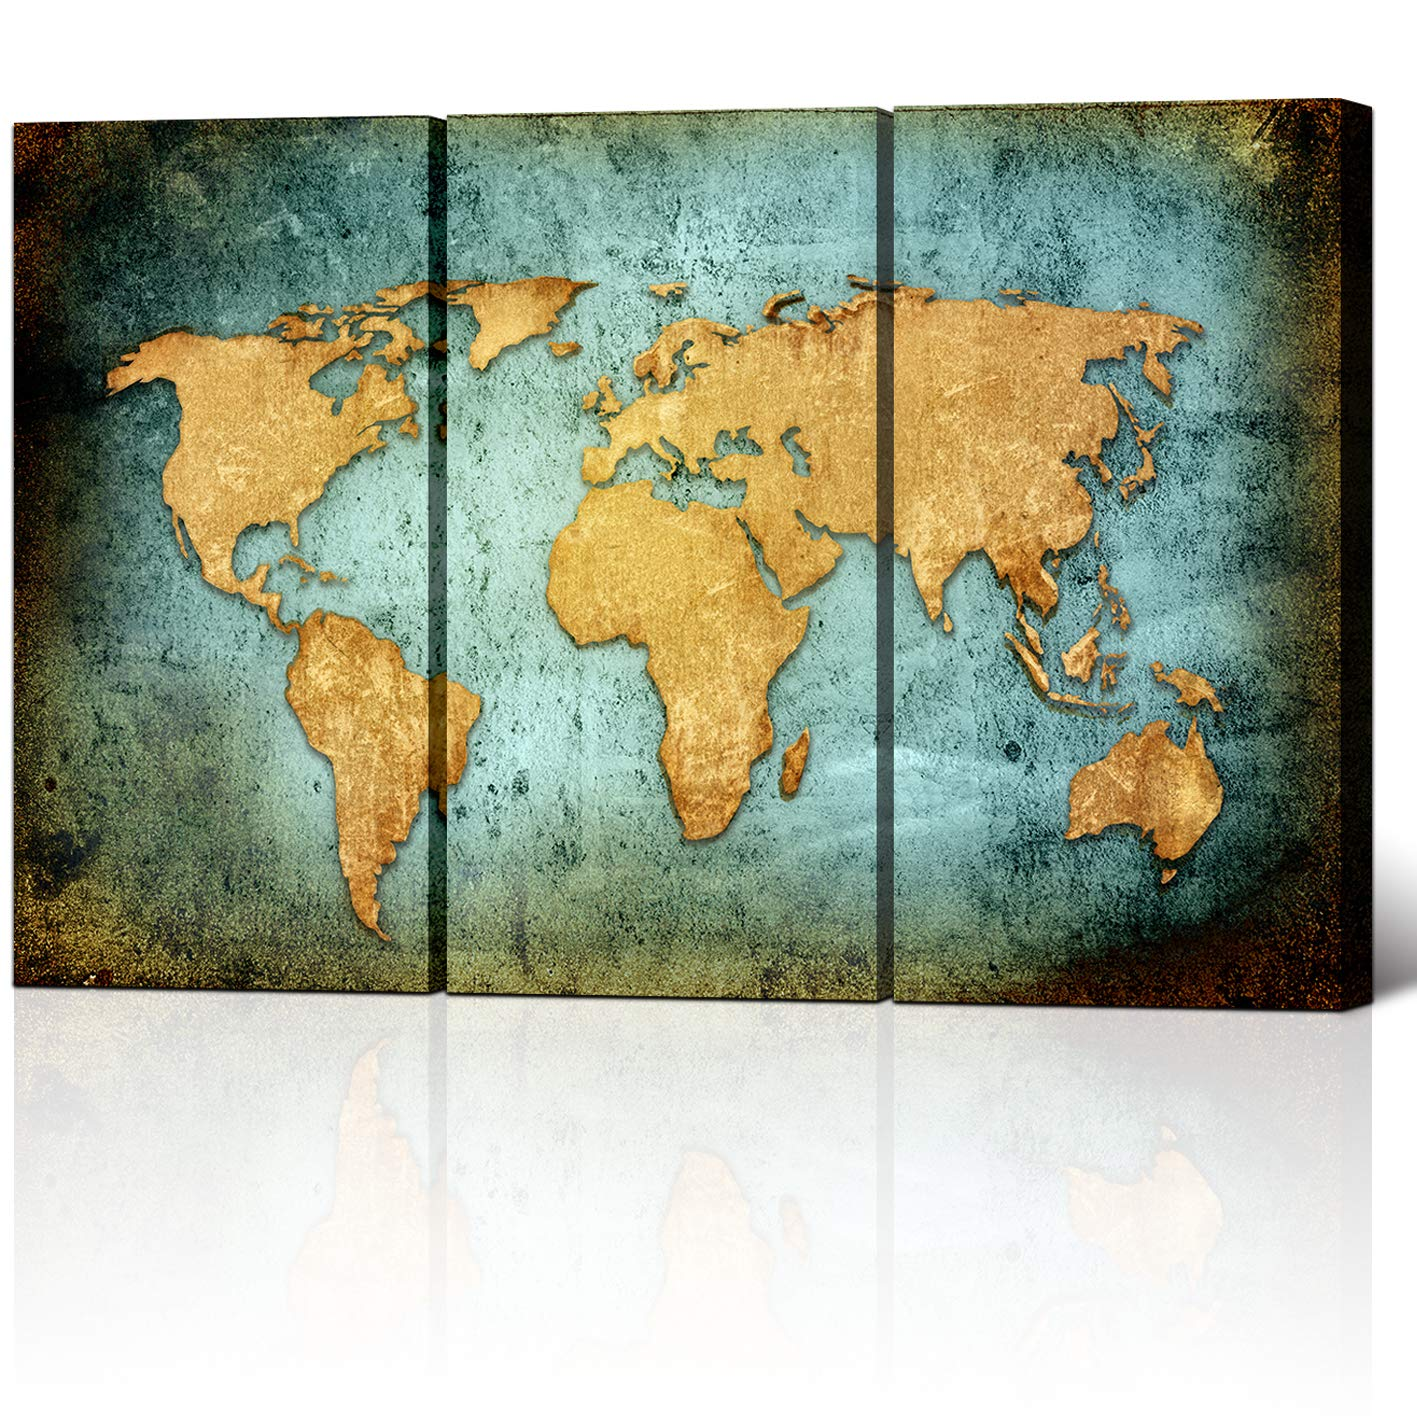 Large Size Vintage World Map Poster Printed On Canvas,Blue Sea Yellow Map  Printing Mural Art For Wall ,Framed and Stretched,World Map Canvas Prints  ...